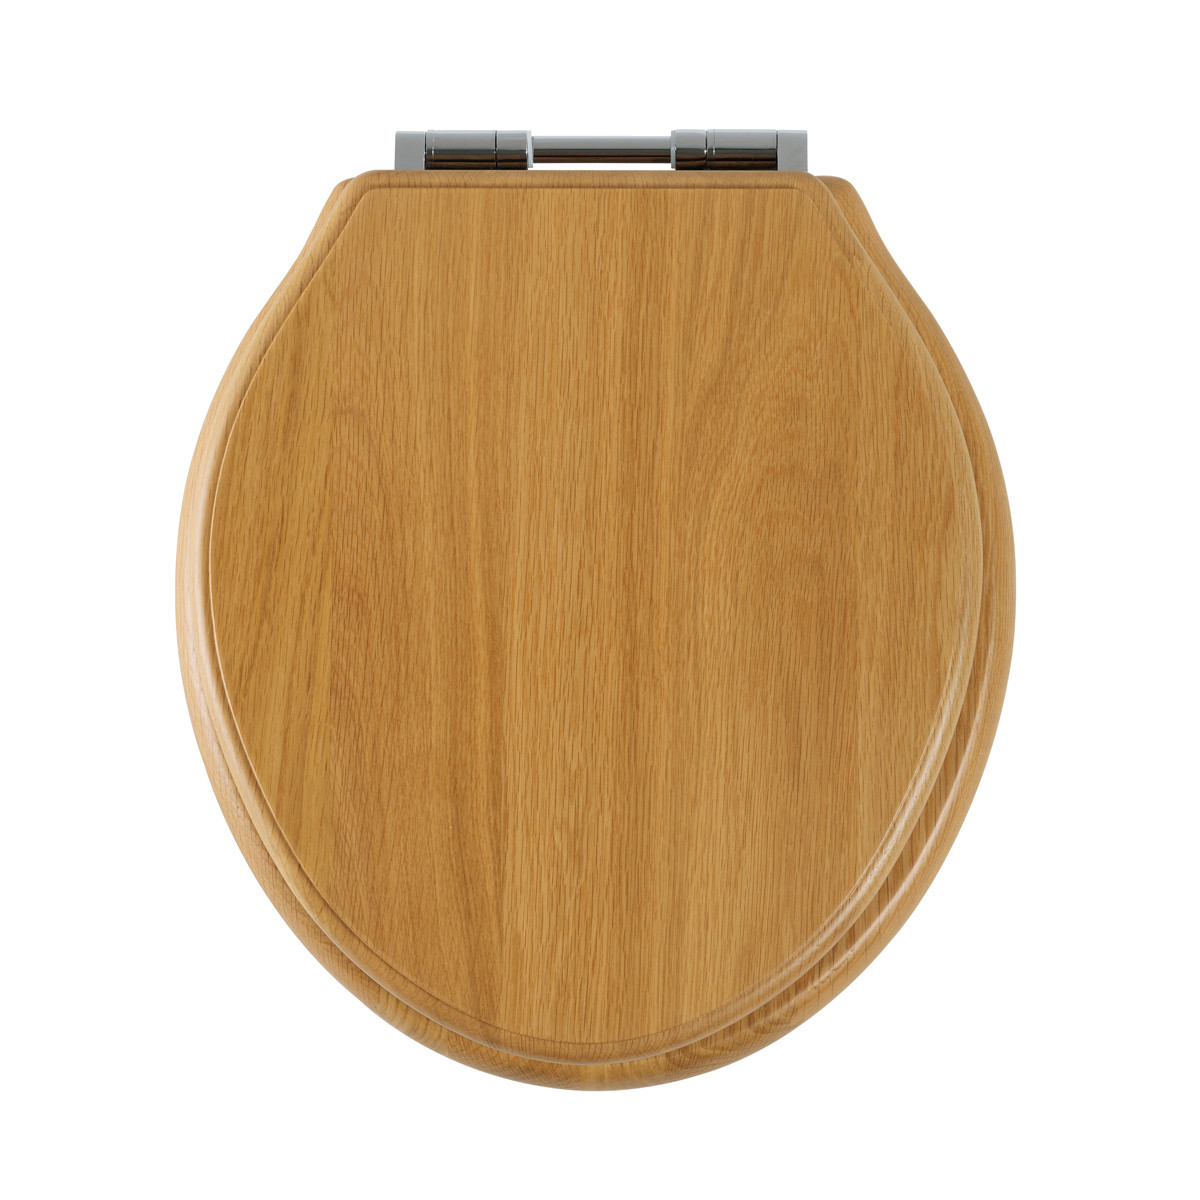 Roper Rhodes Greenwich Solid Wood Oak Soft Close Toilet Seat